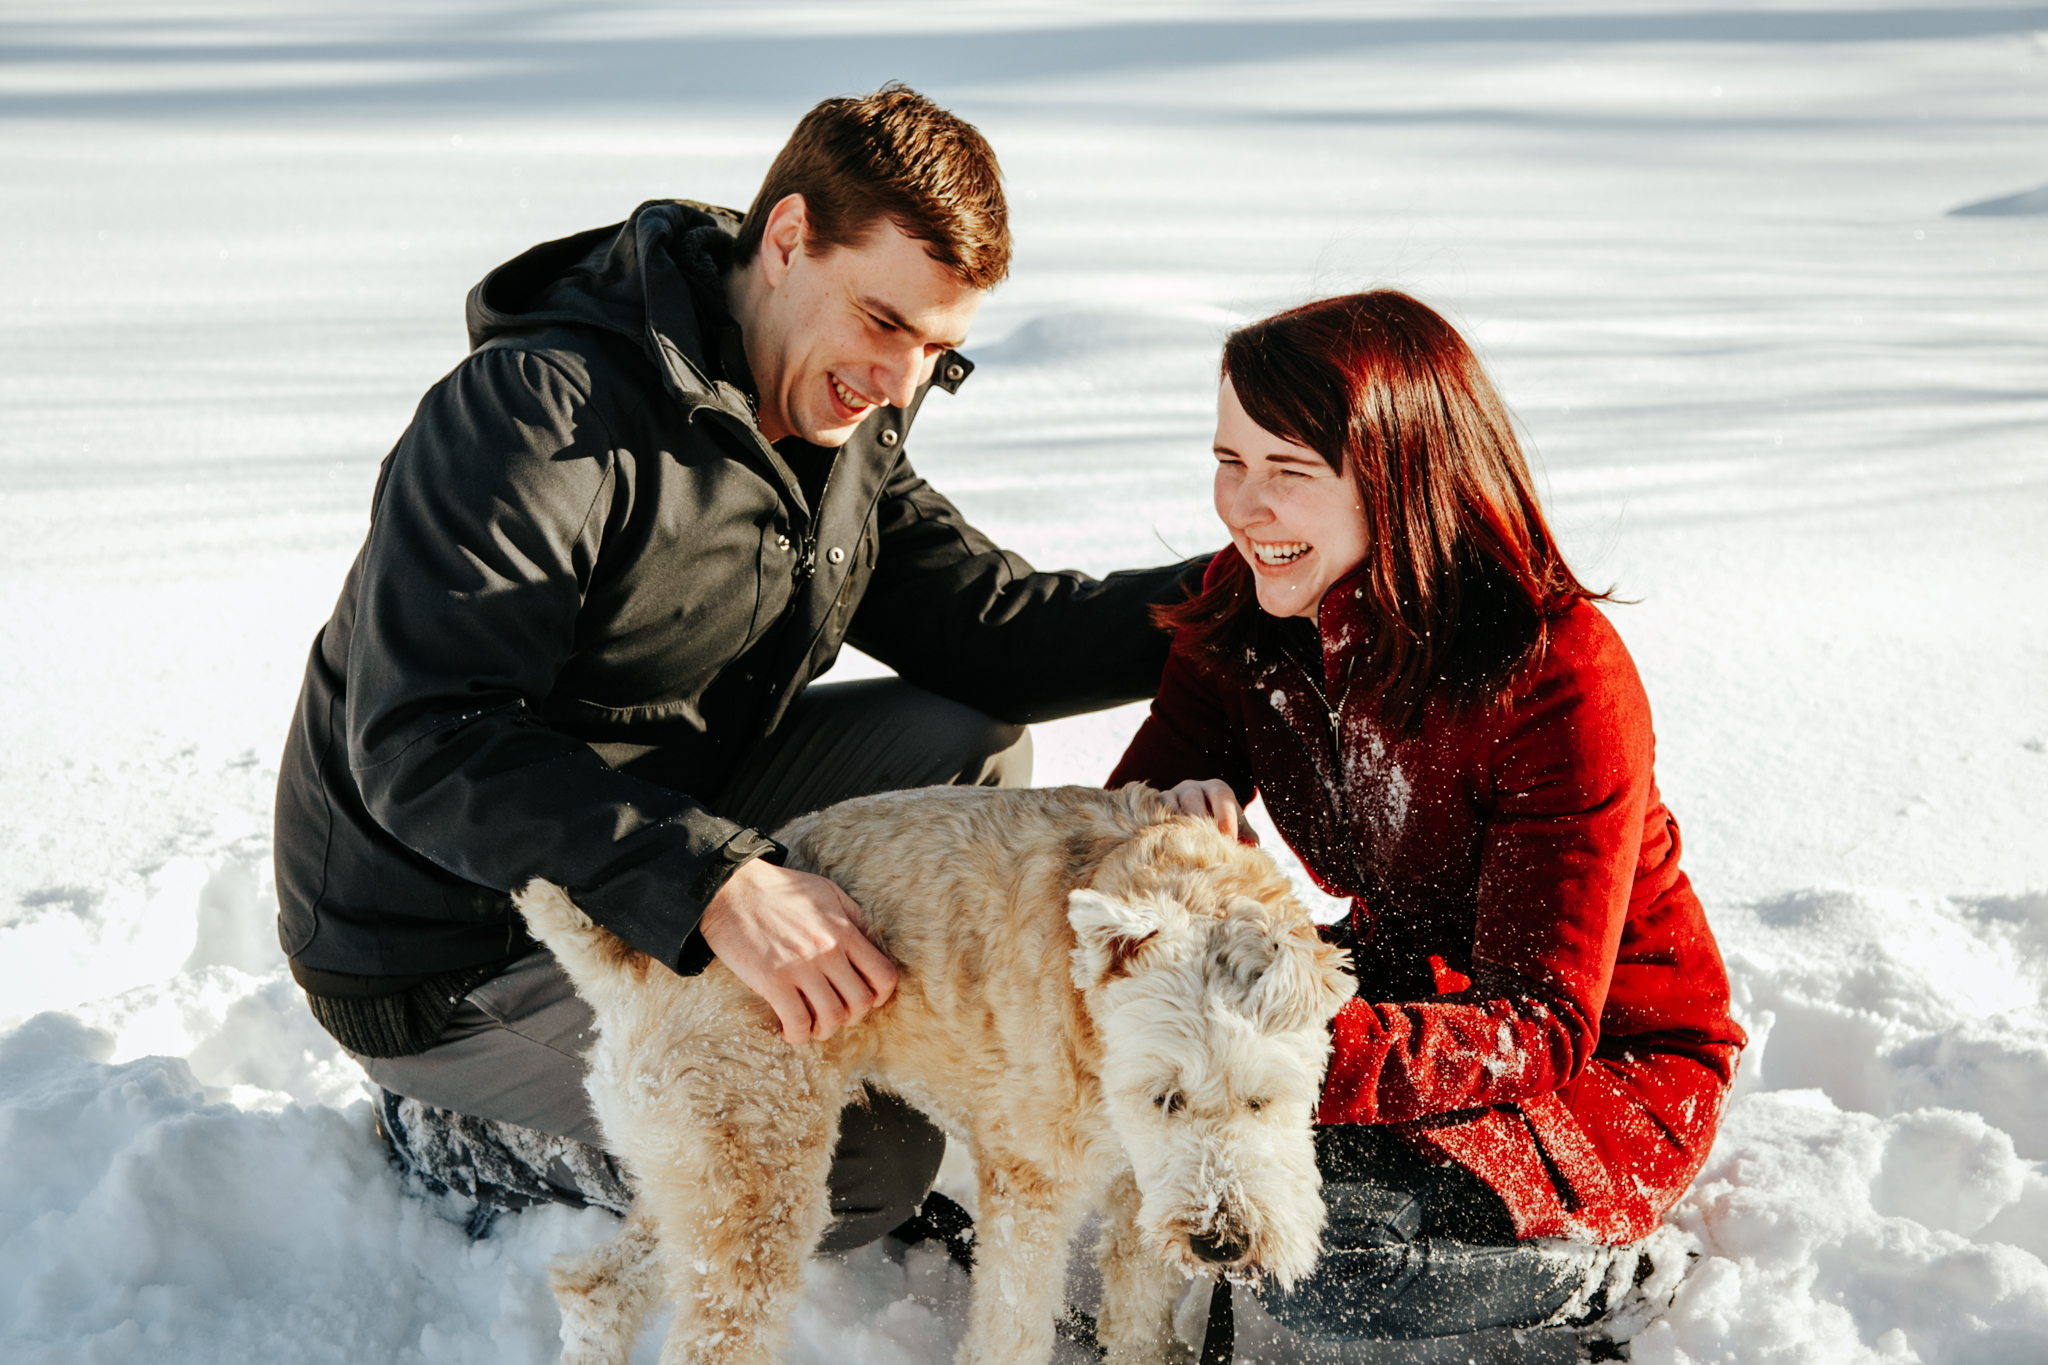 waterton-engagement-photographer-love-and-be-loved-photography-lethbridge-mike-brenna-engaged-picture-image-photo-5.jpg